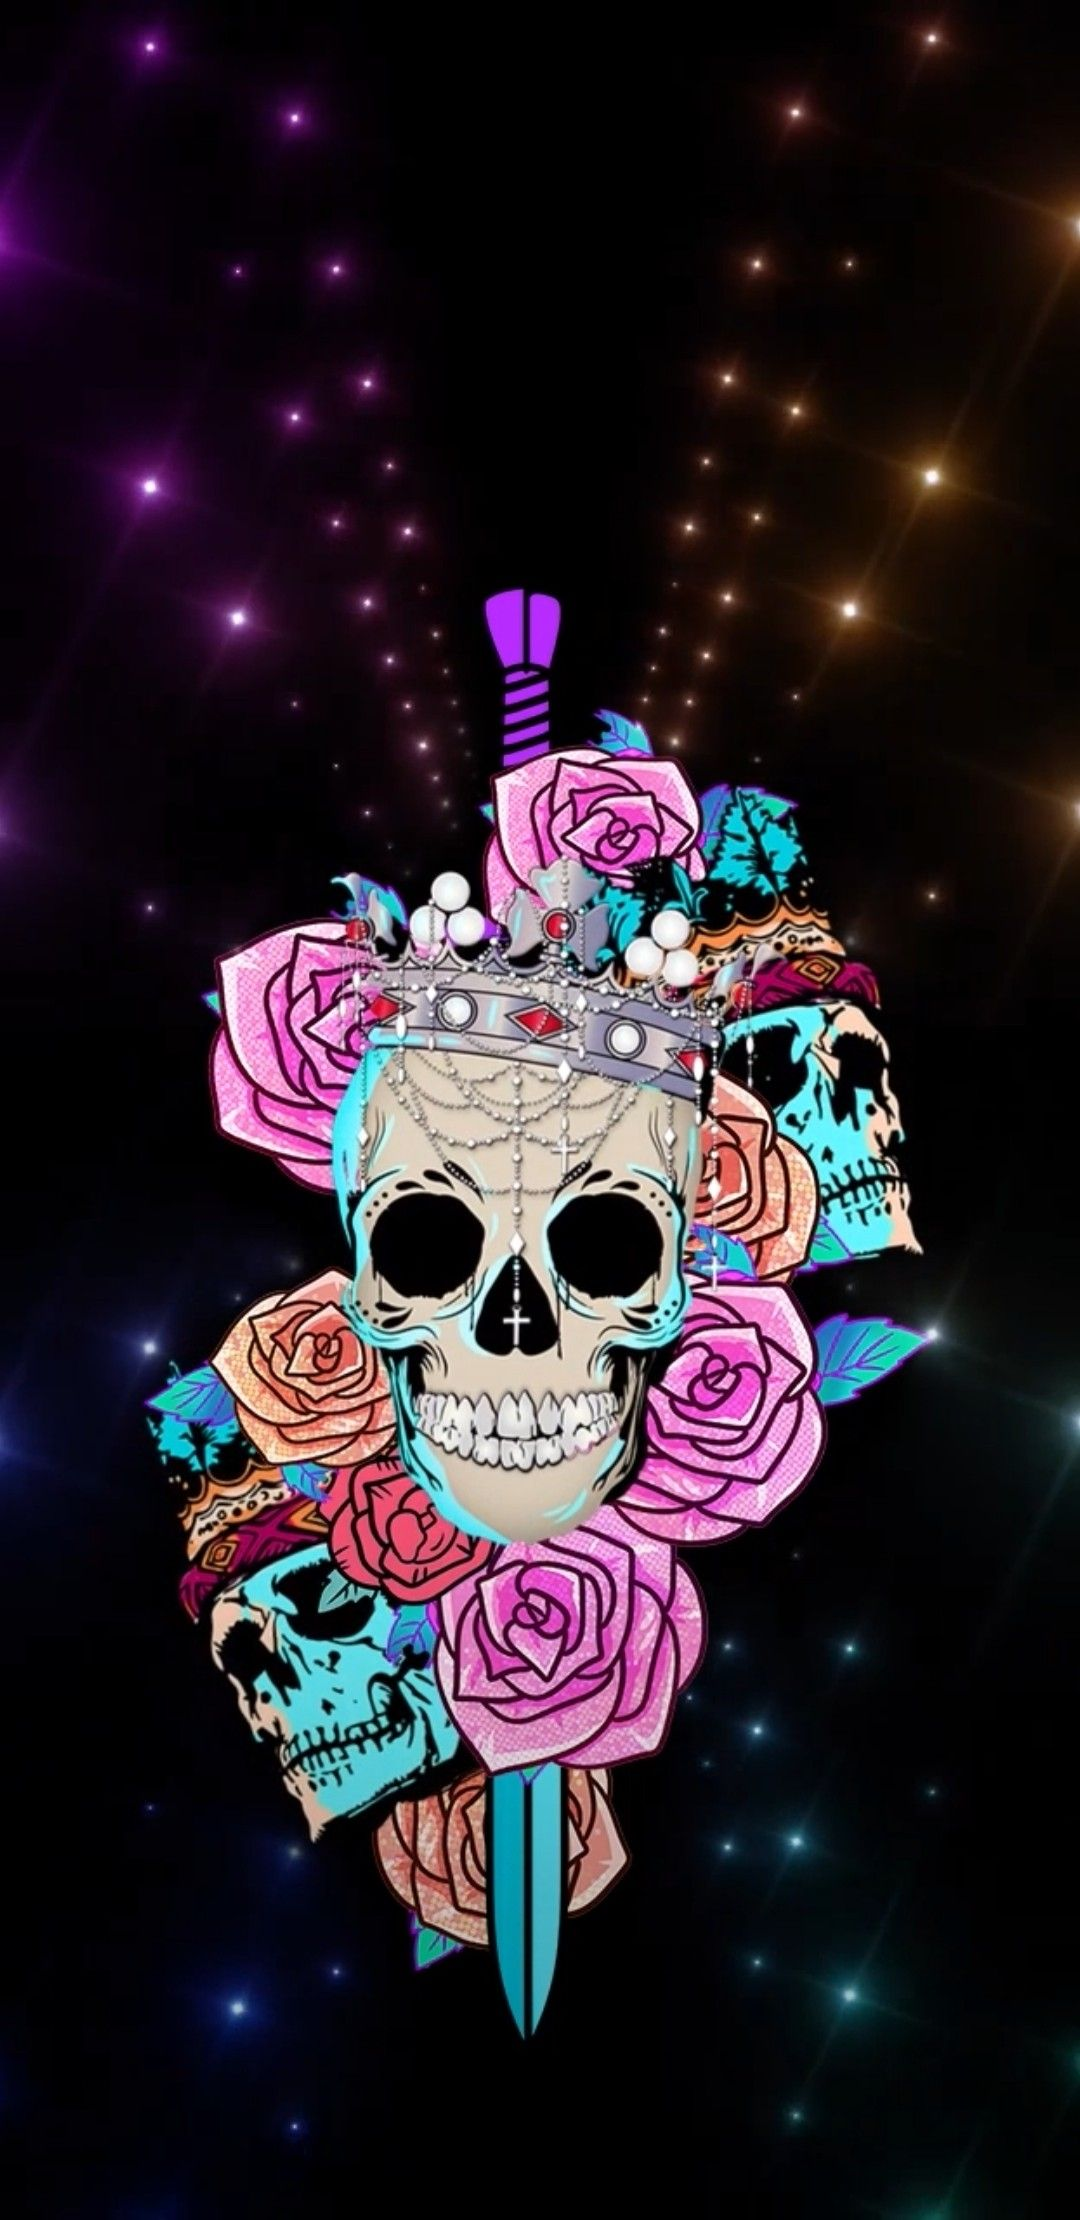 Pin By Diane King On Girly Skulls In 2019 Sugar Skull